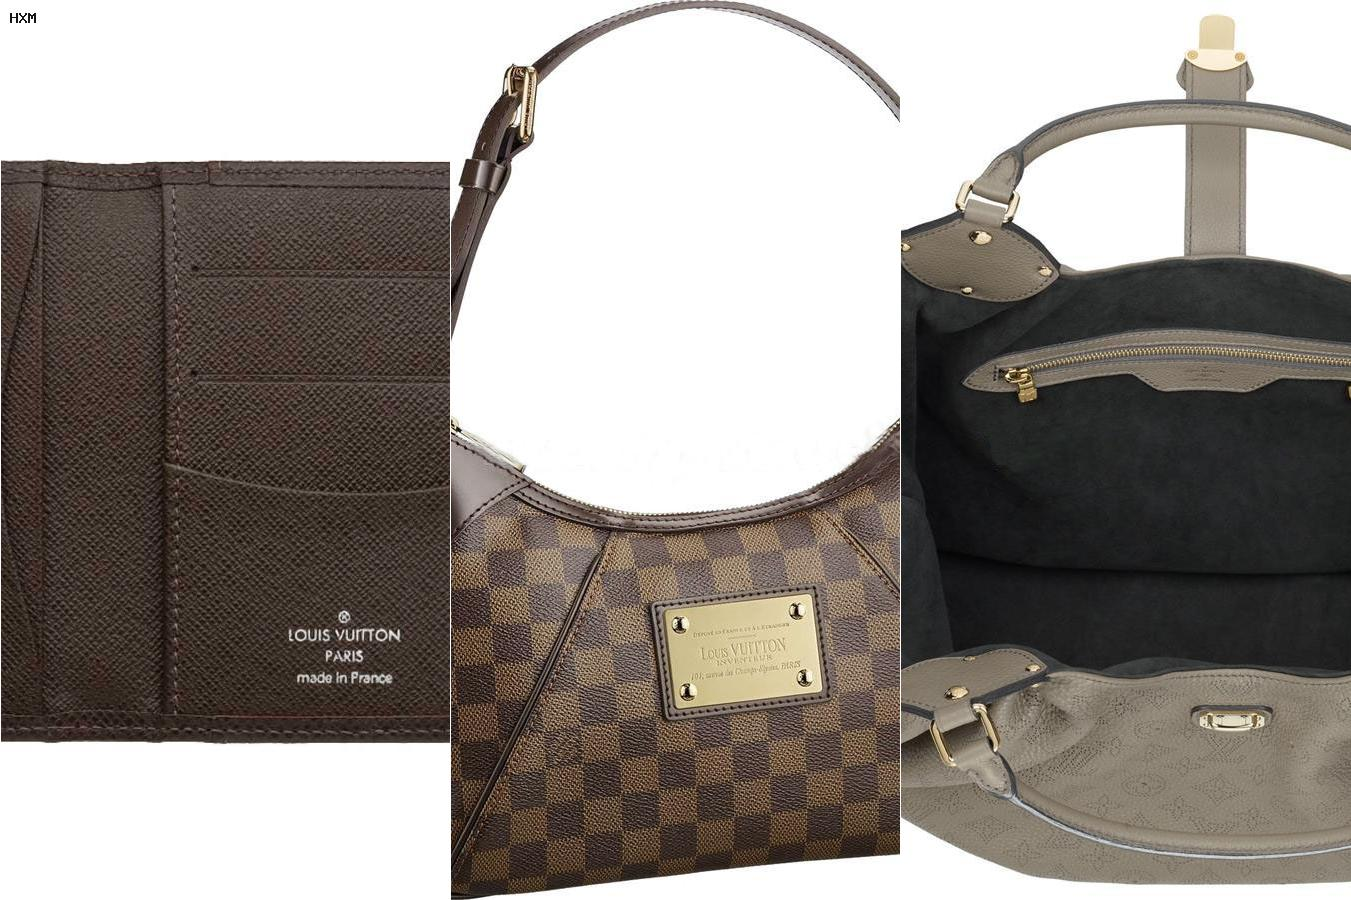 louis vuitton damier ebene eva clutch price